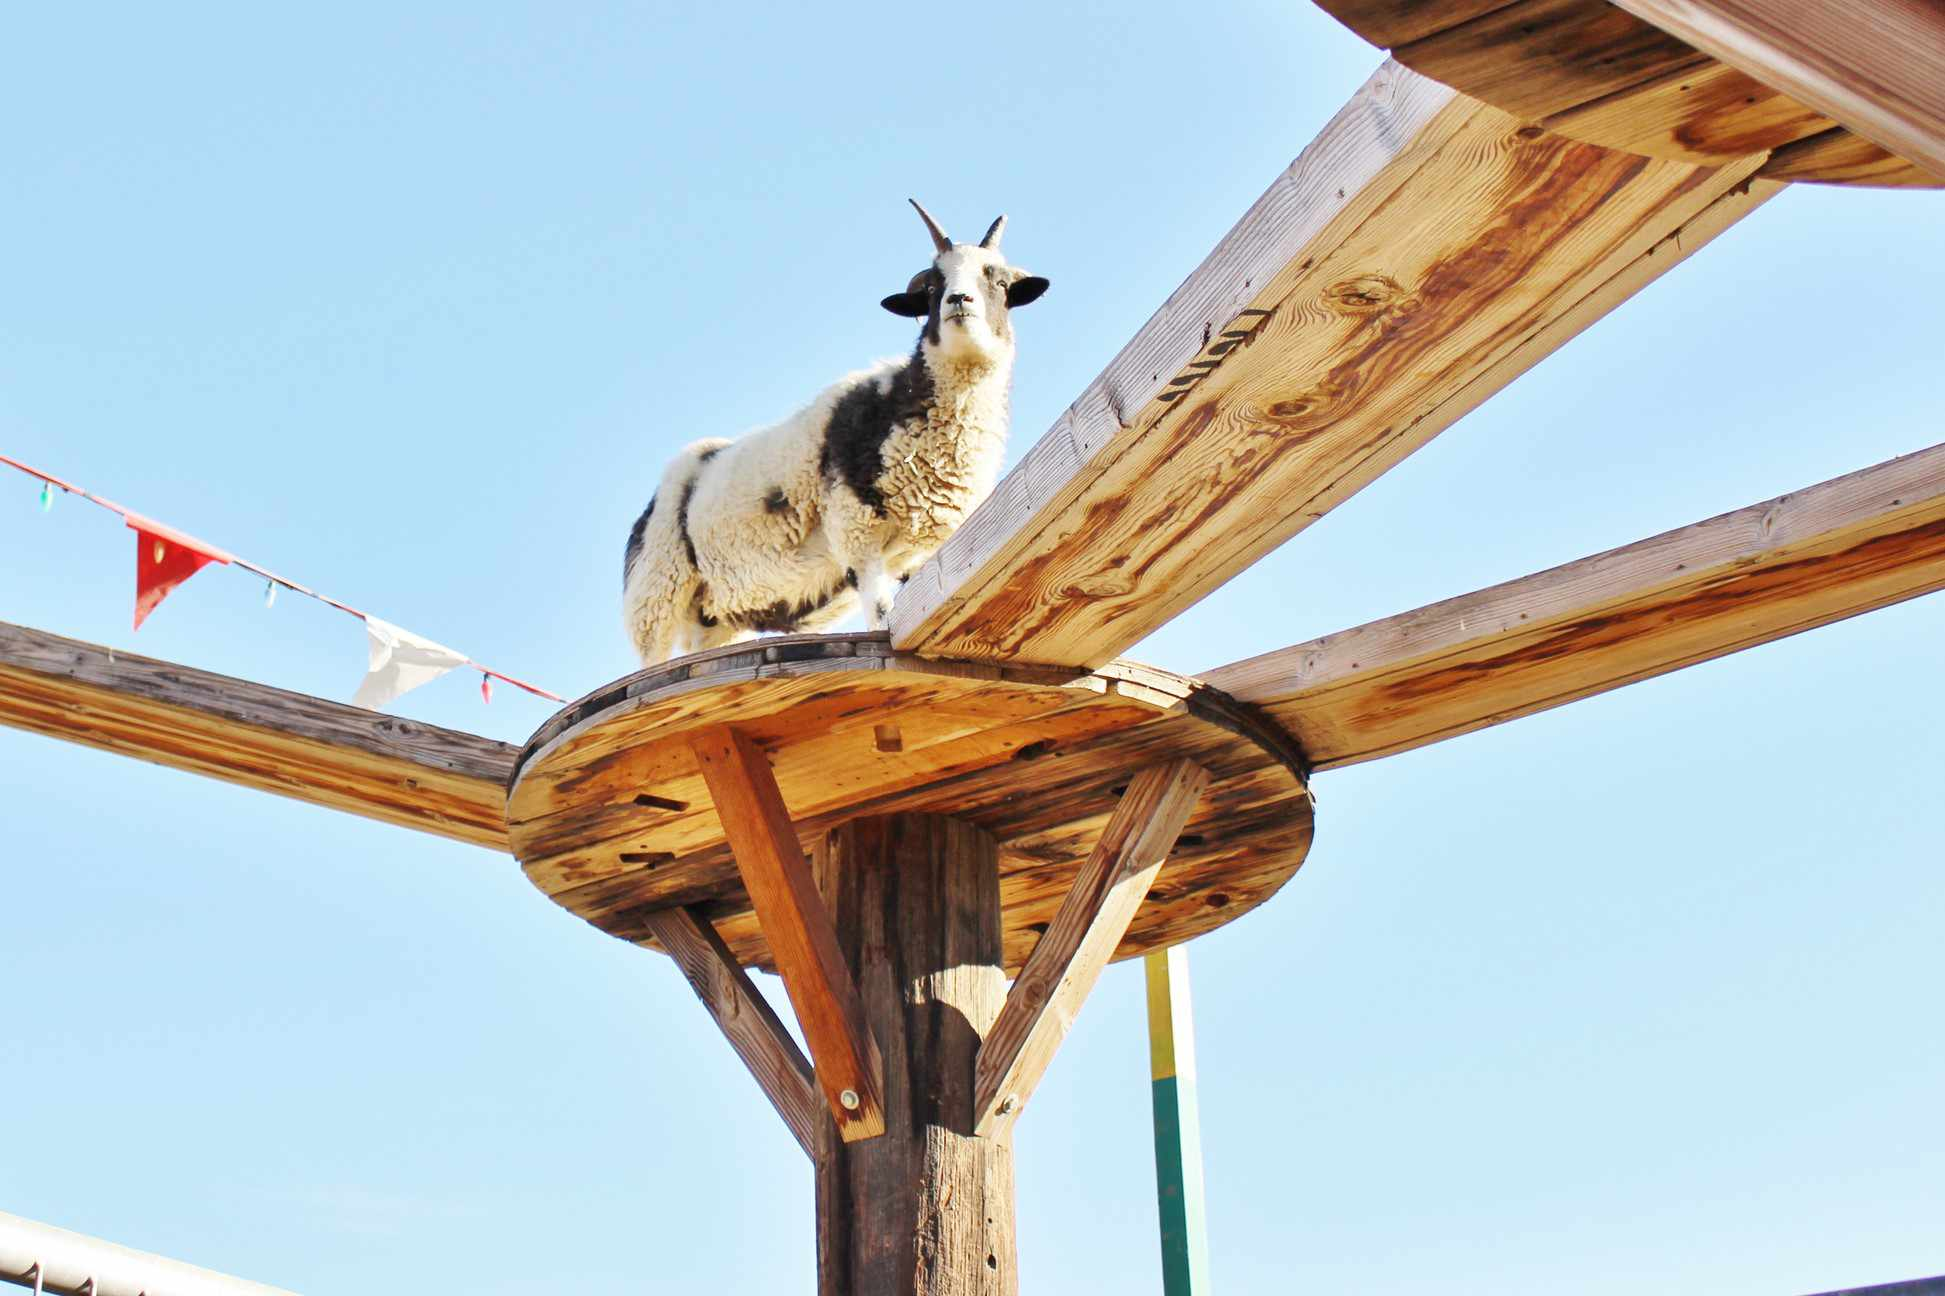 Goat on top of a wooden walking beam structure